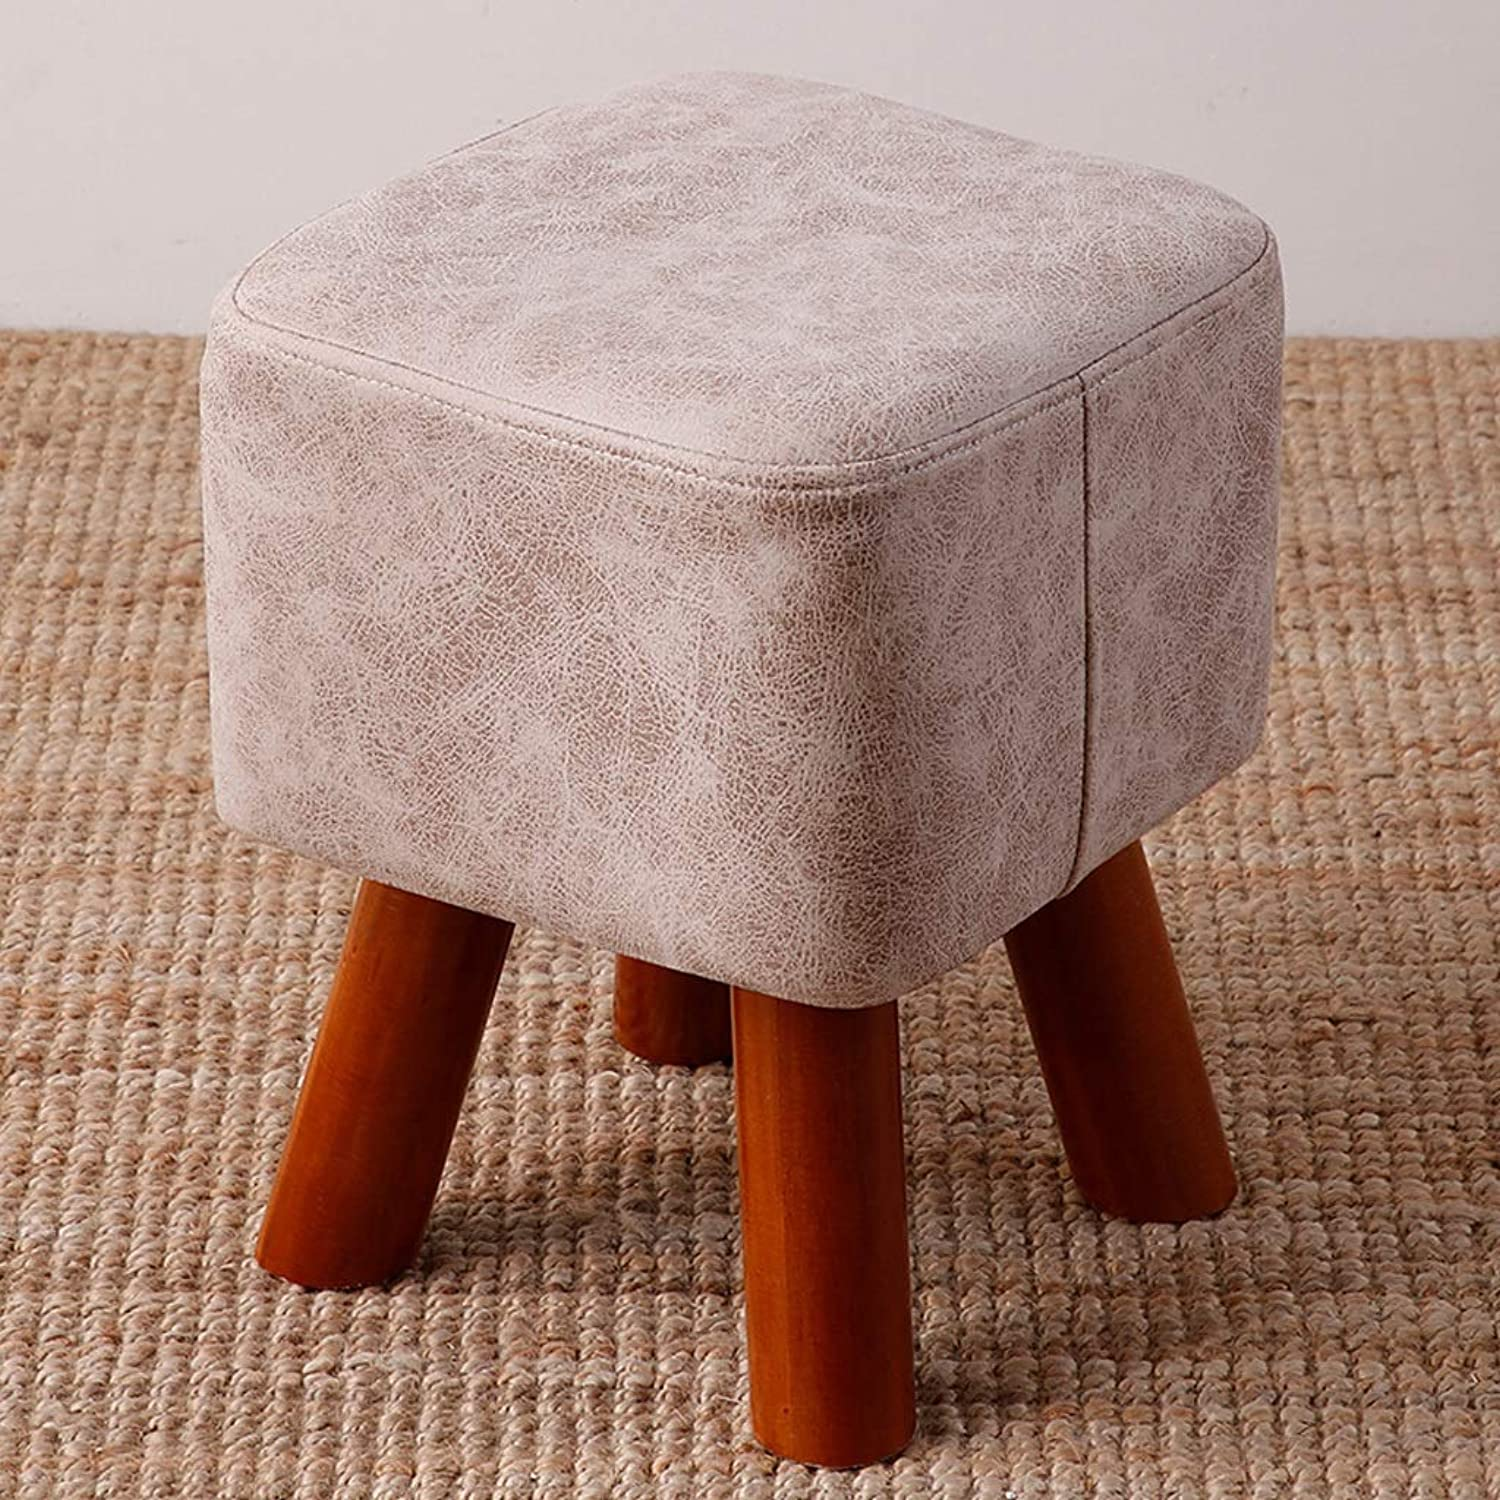 CXQ Modern Creative Stool Home Living Room Fashion Solid Wood Fabric Square Stool Sofa Stool Change shoes Bench White Bench (Size   L)